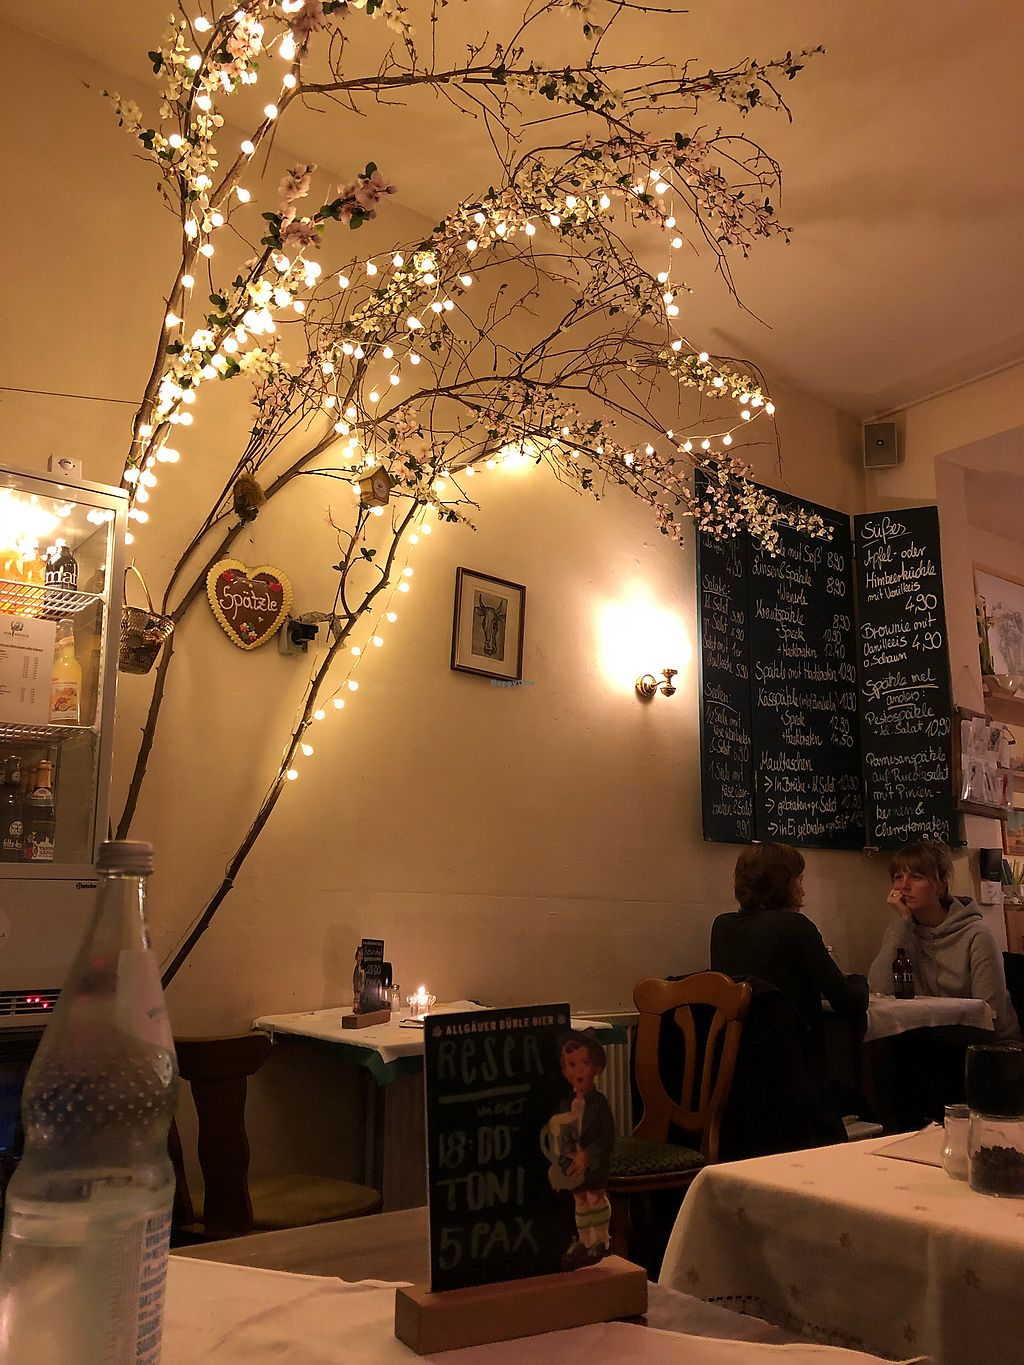 """Photo of Zum Spatzle  by <a href=""""/members/profile/anninamaier"""">anninamaier</a> <br/>Inside the restaurant <br/> February 2, 2018  - <a href='/contact/abuse/image/50352/354145'>Report</a>"""